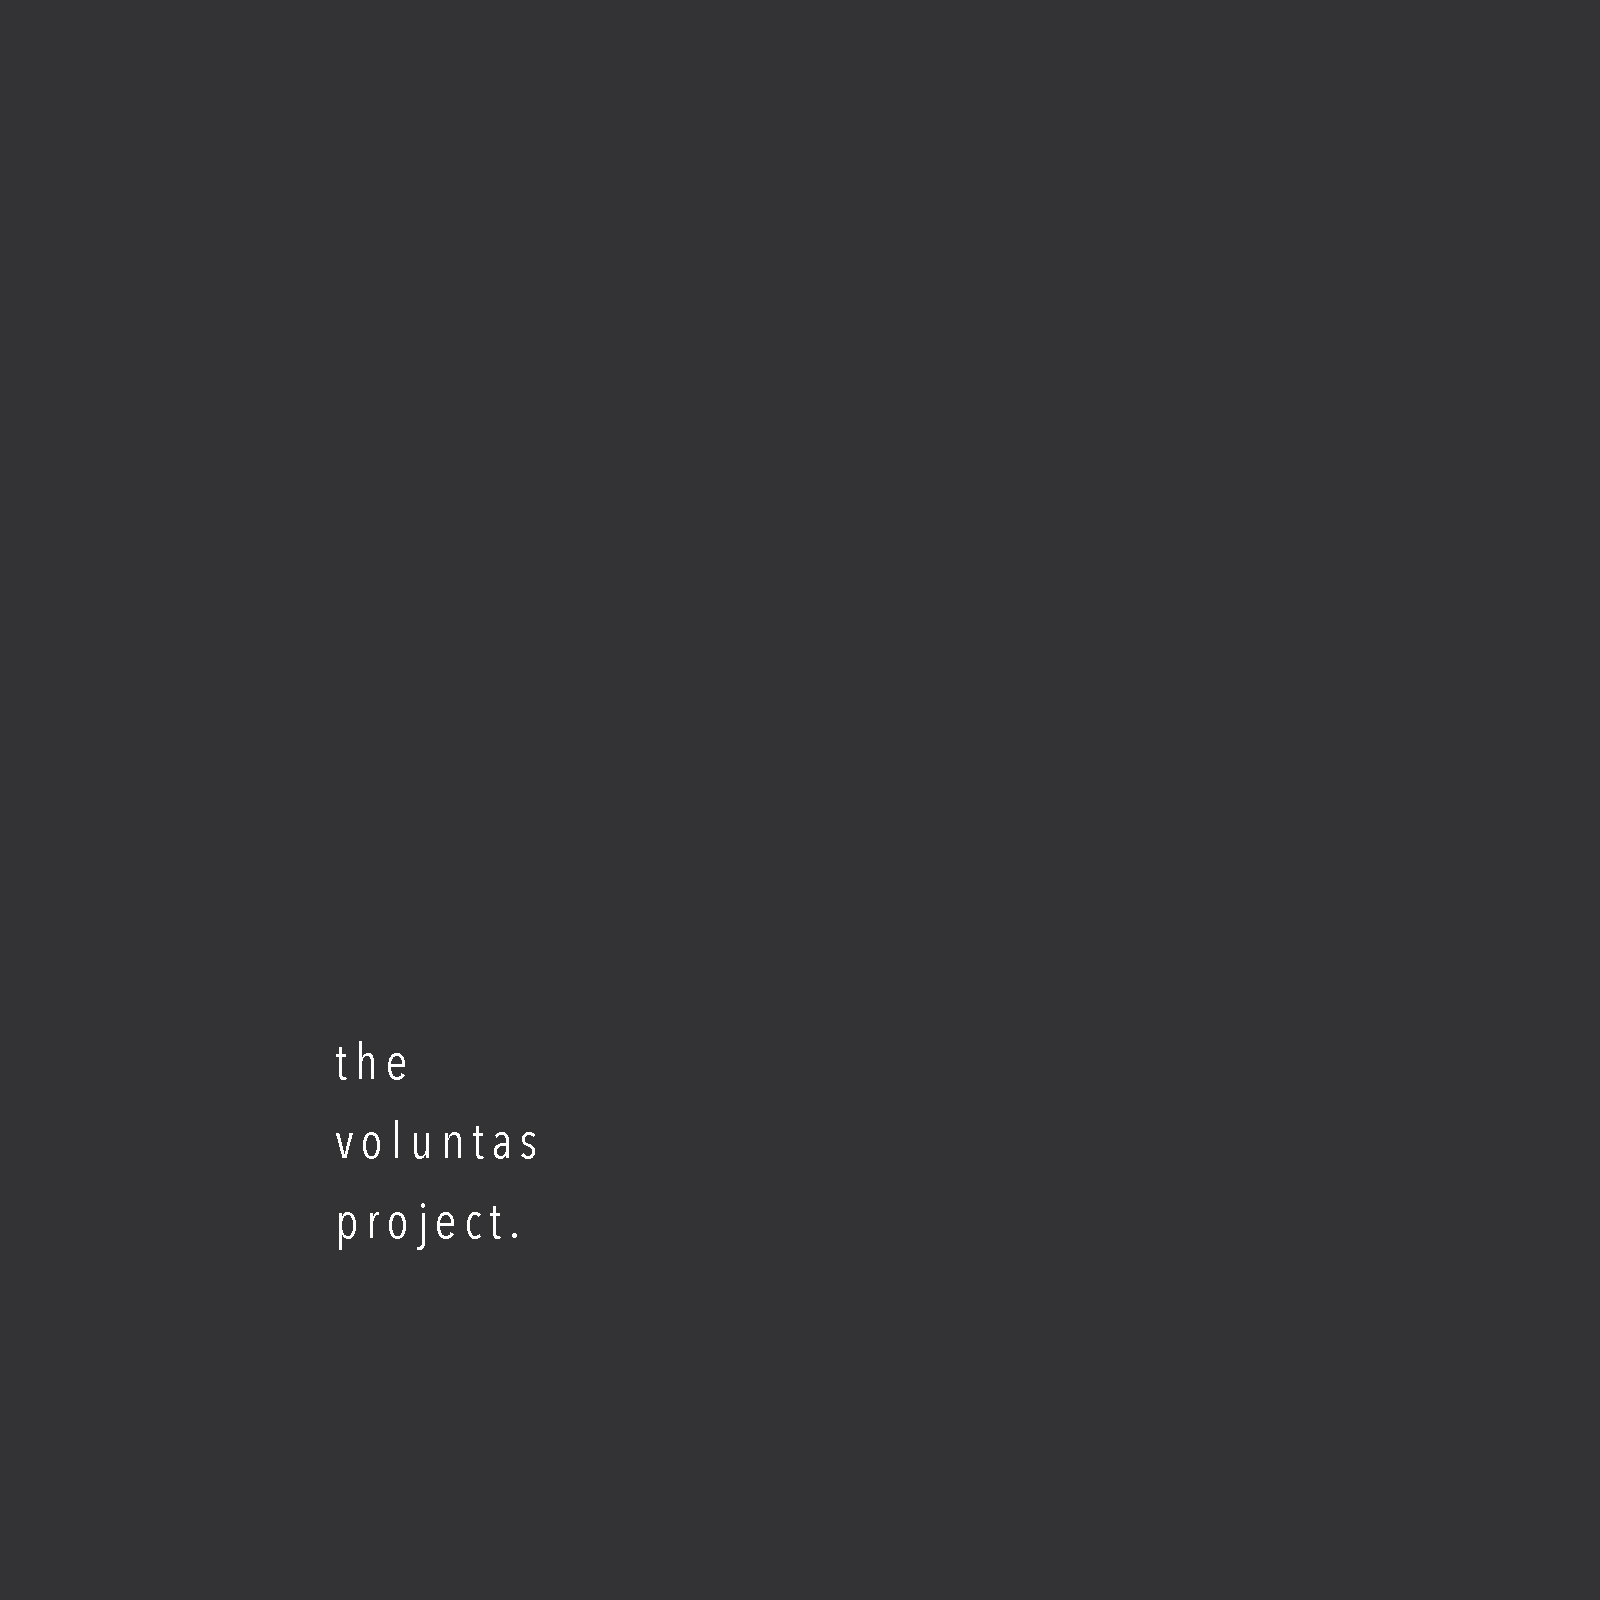 the voluntas project.